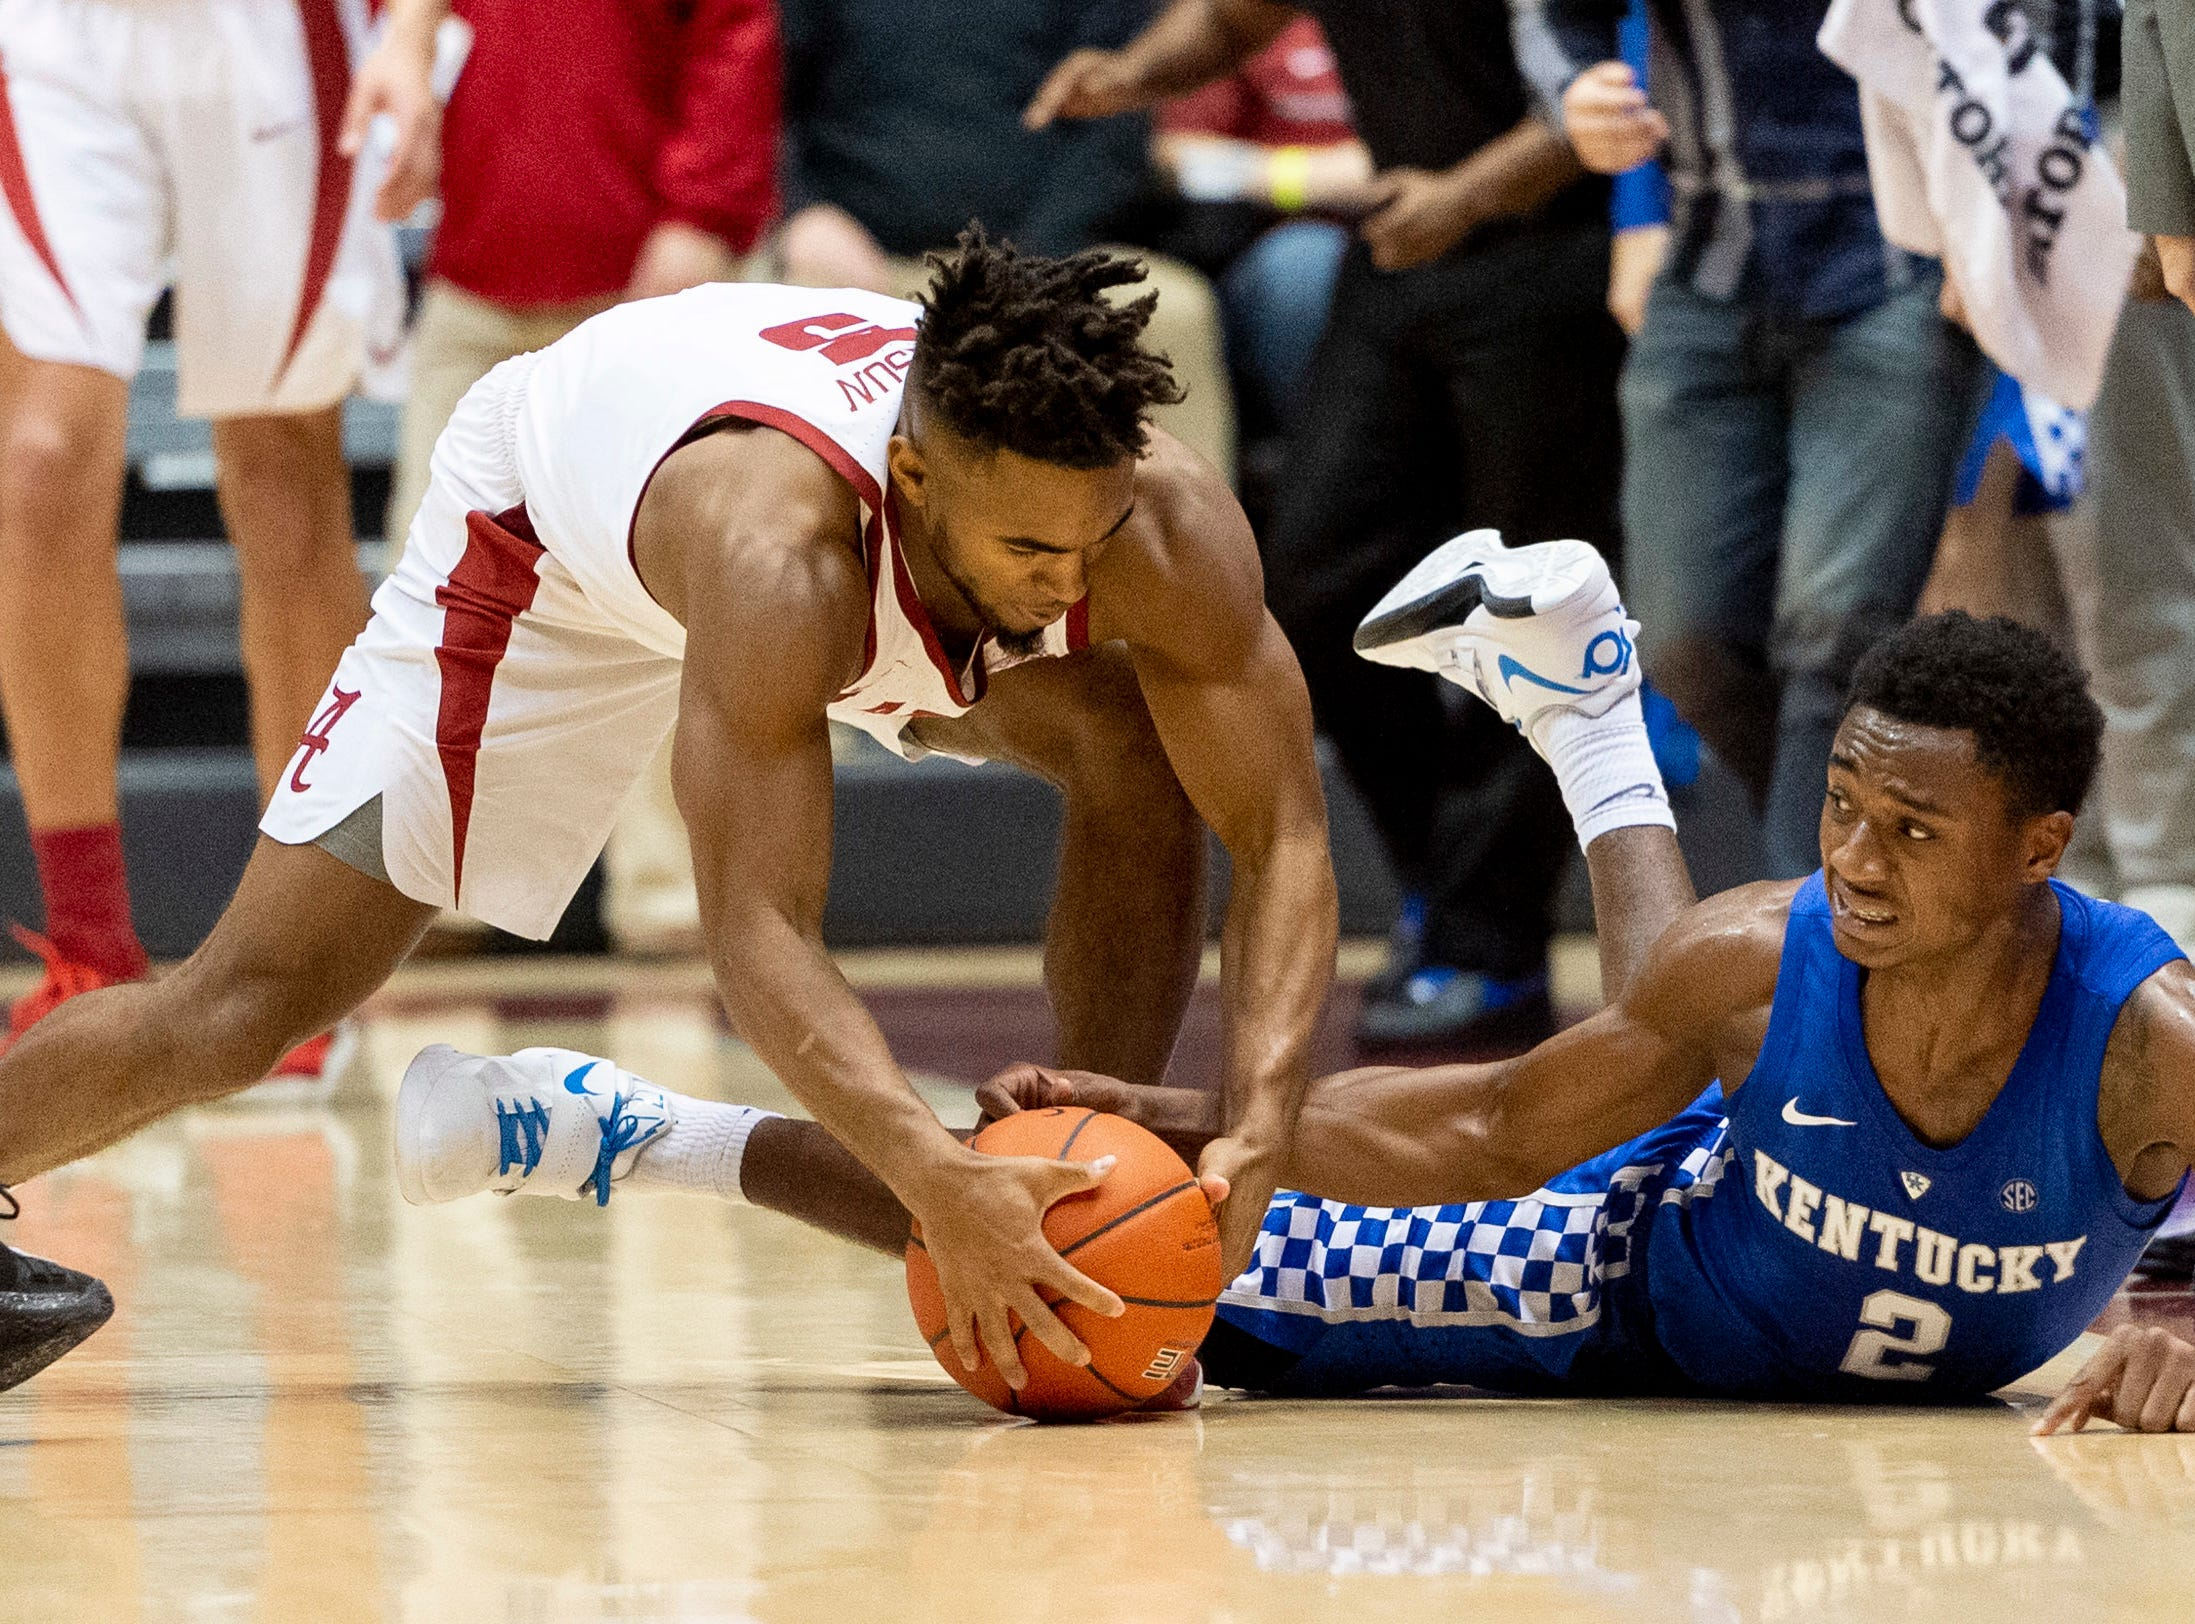 Kentucky guard Ashton Hagans (2) tries for a steal from Alabama guard Avery Johnson Jr. (5) during the first half of an NCAA college basketball game, Saturday, Jan. 5, 2019.